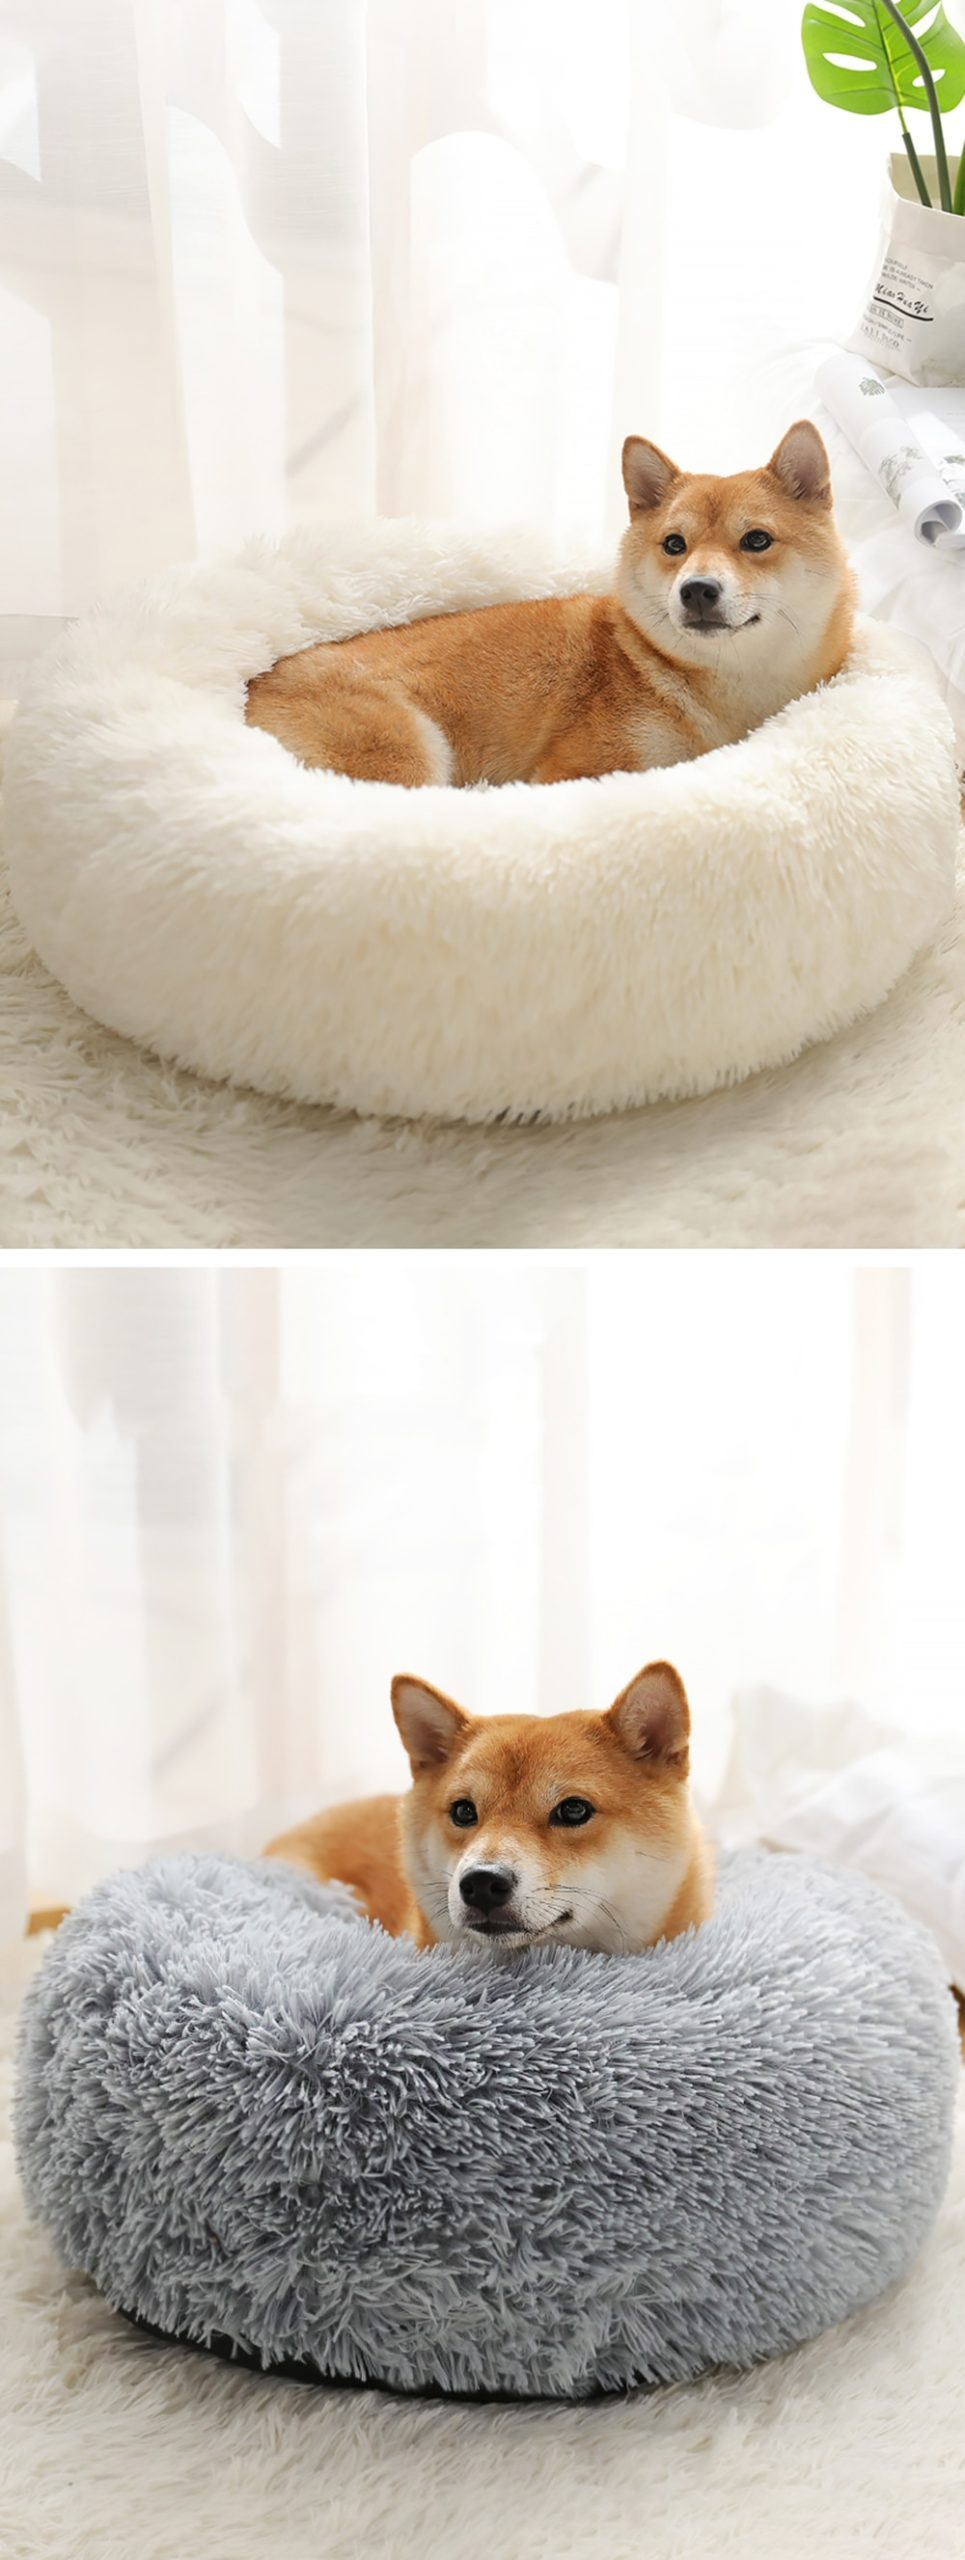 Long Plush Pet Bed Cat Super Soft Bed for Dogs Kennel Dog Round Winter Warm Sleeping  Puppy Cushion Mat Portable Cat Supplies